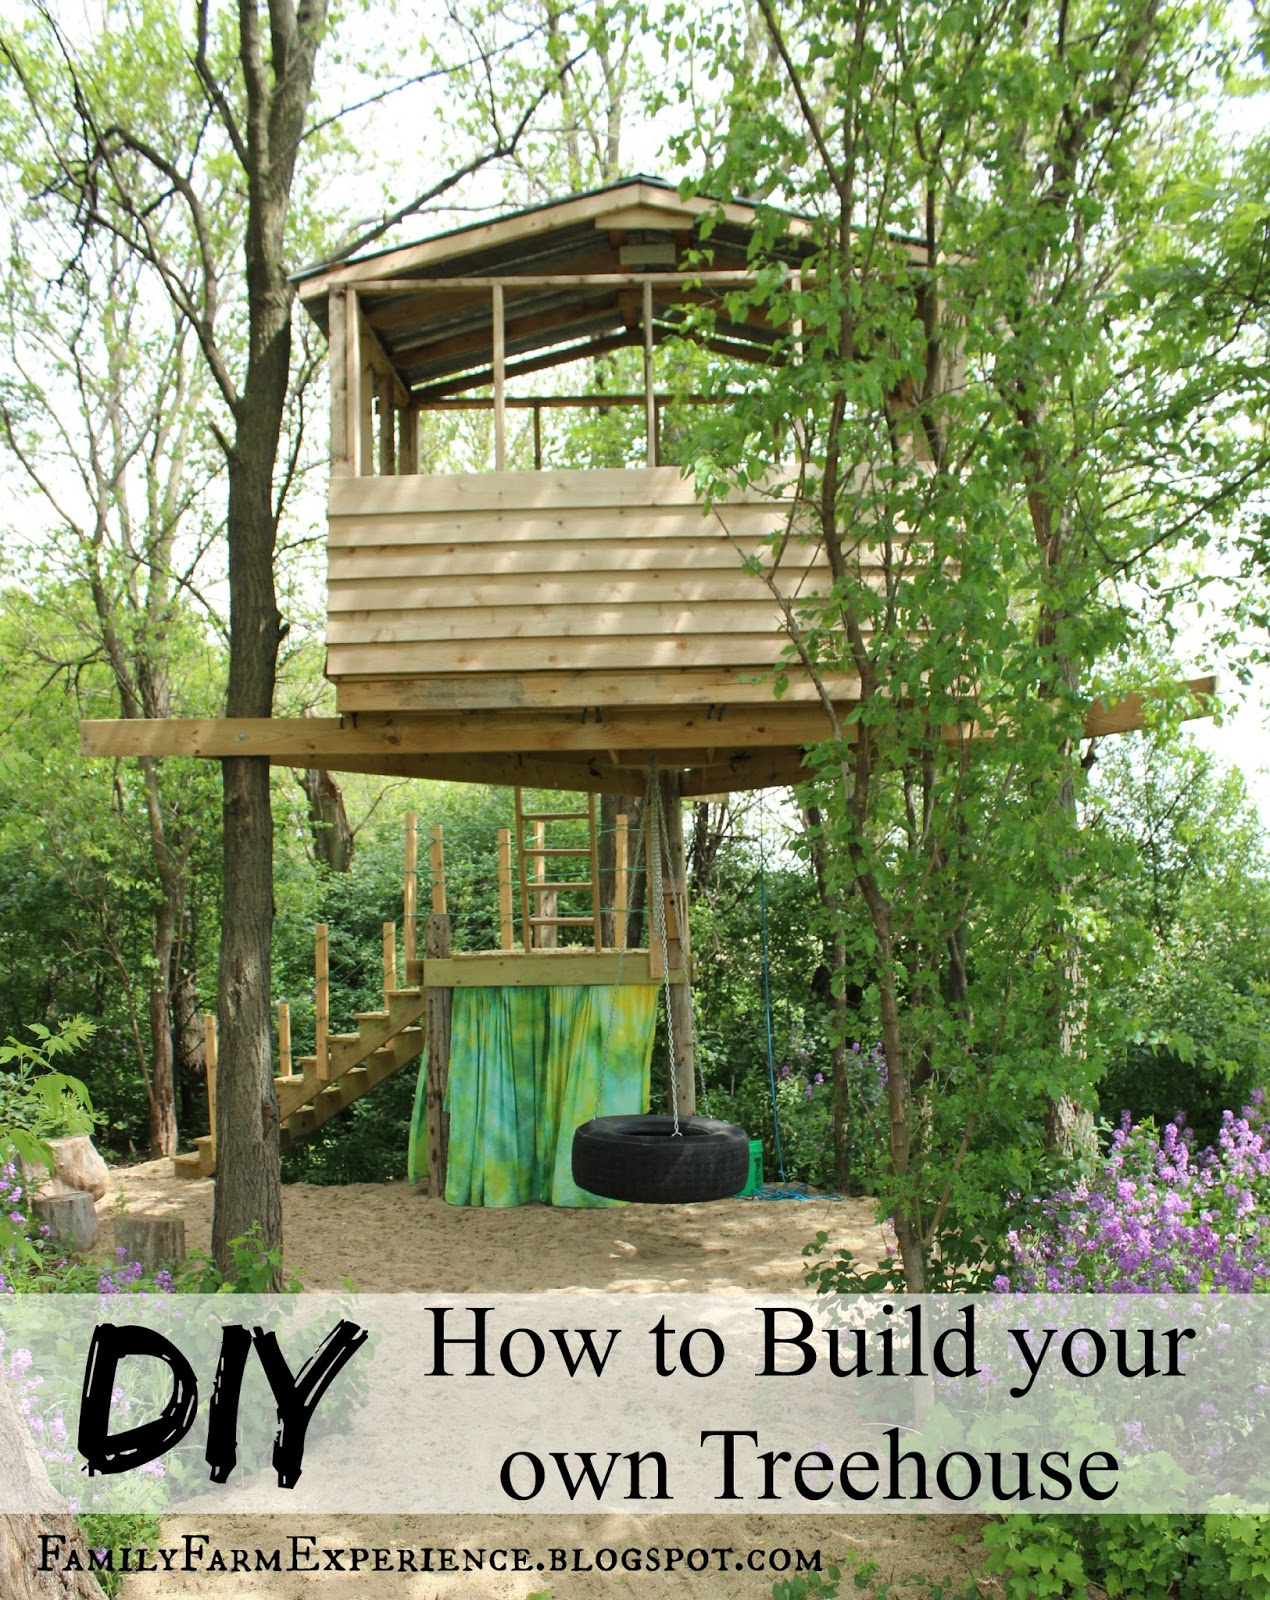 Family farm experience diy how to build your own treehouse for Make own house